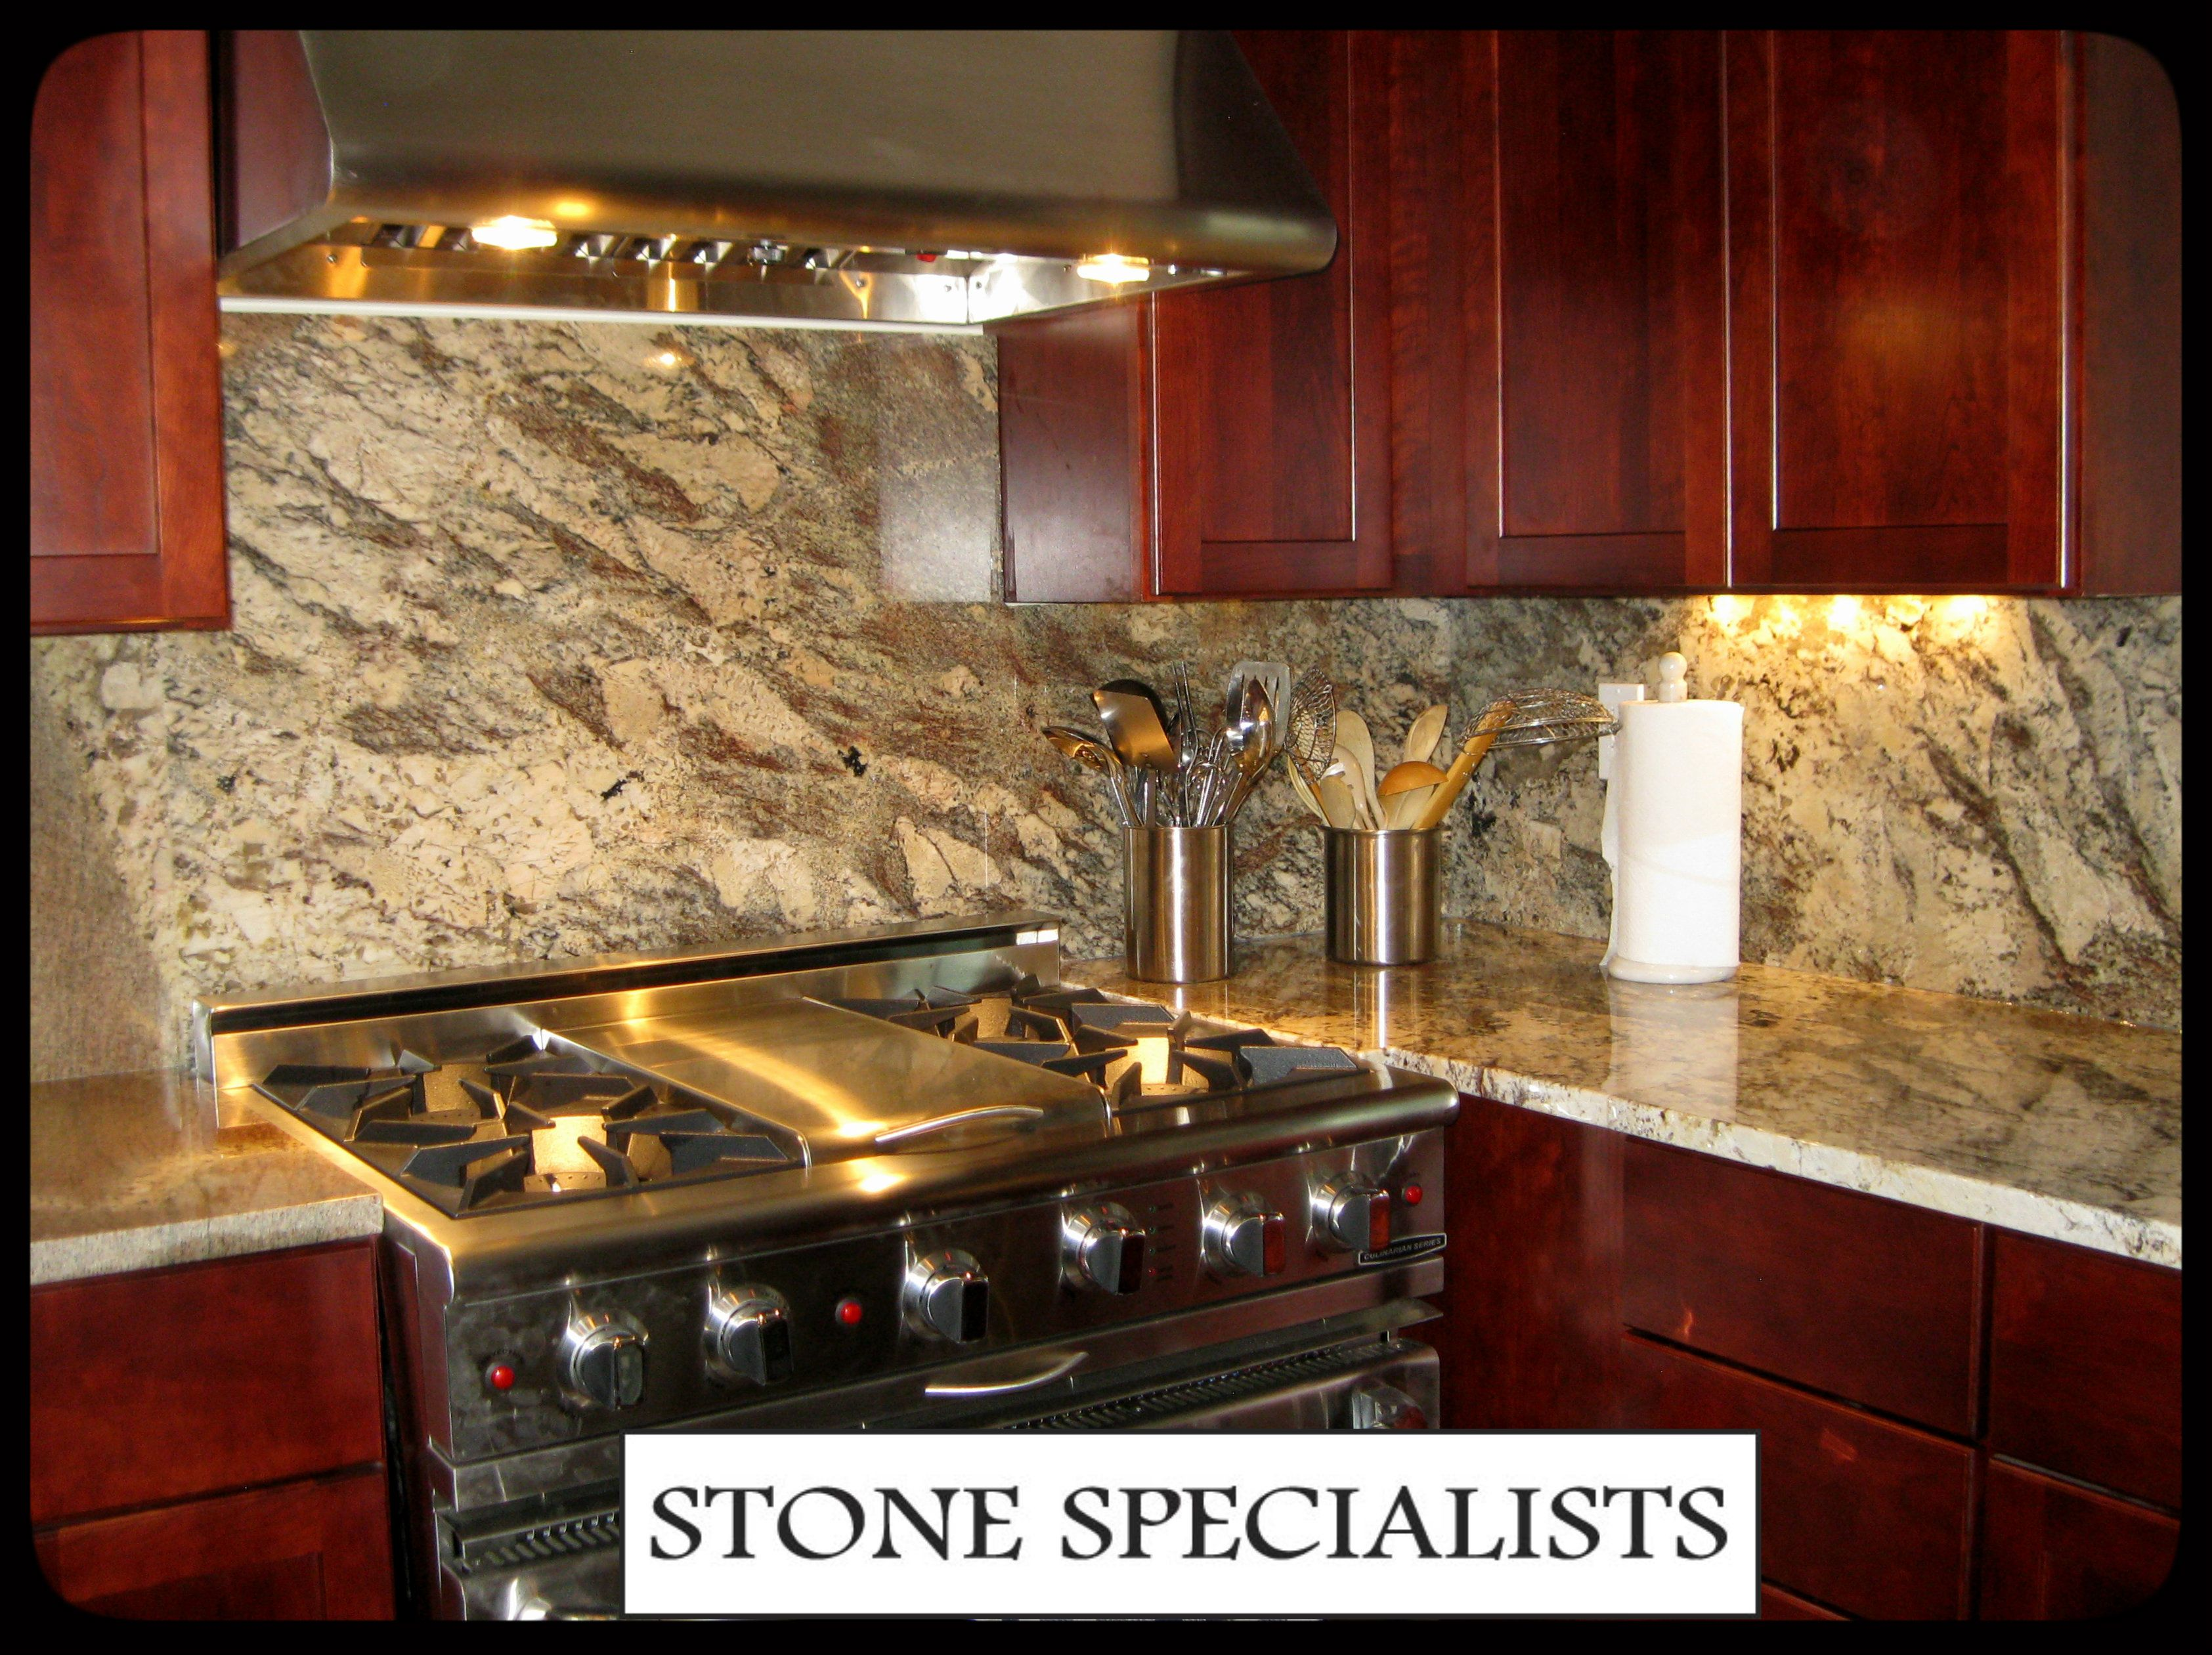 Mother Nature has her way with color and pattern. Netuno Bordeaux granite  from the Stone